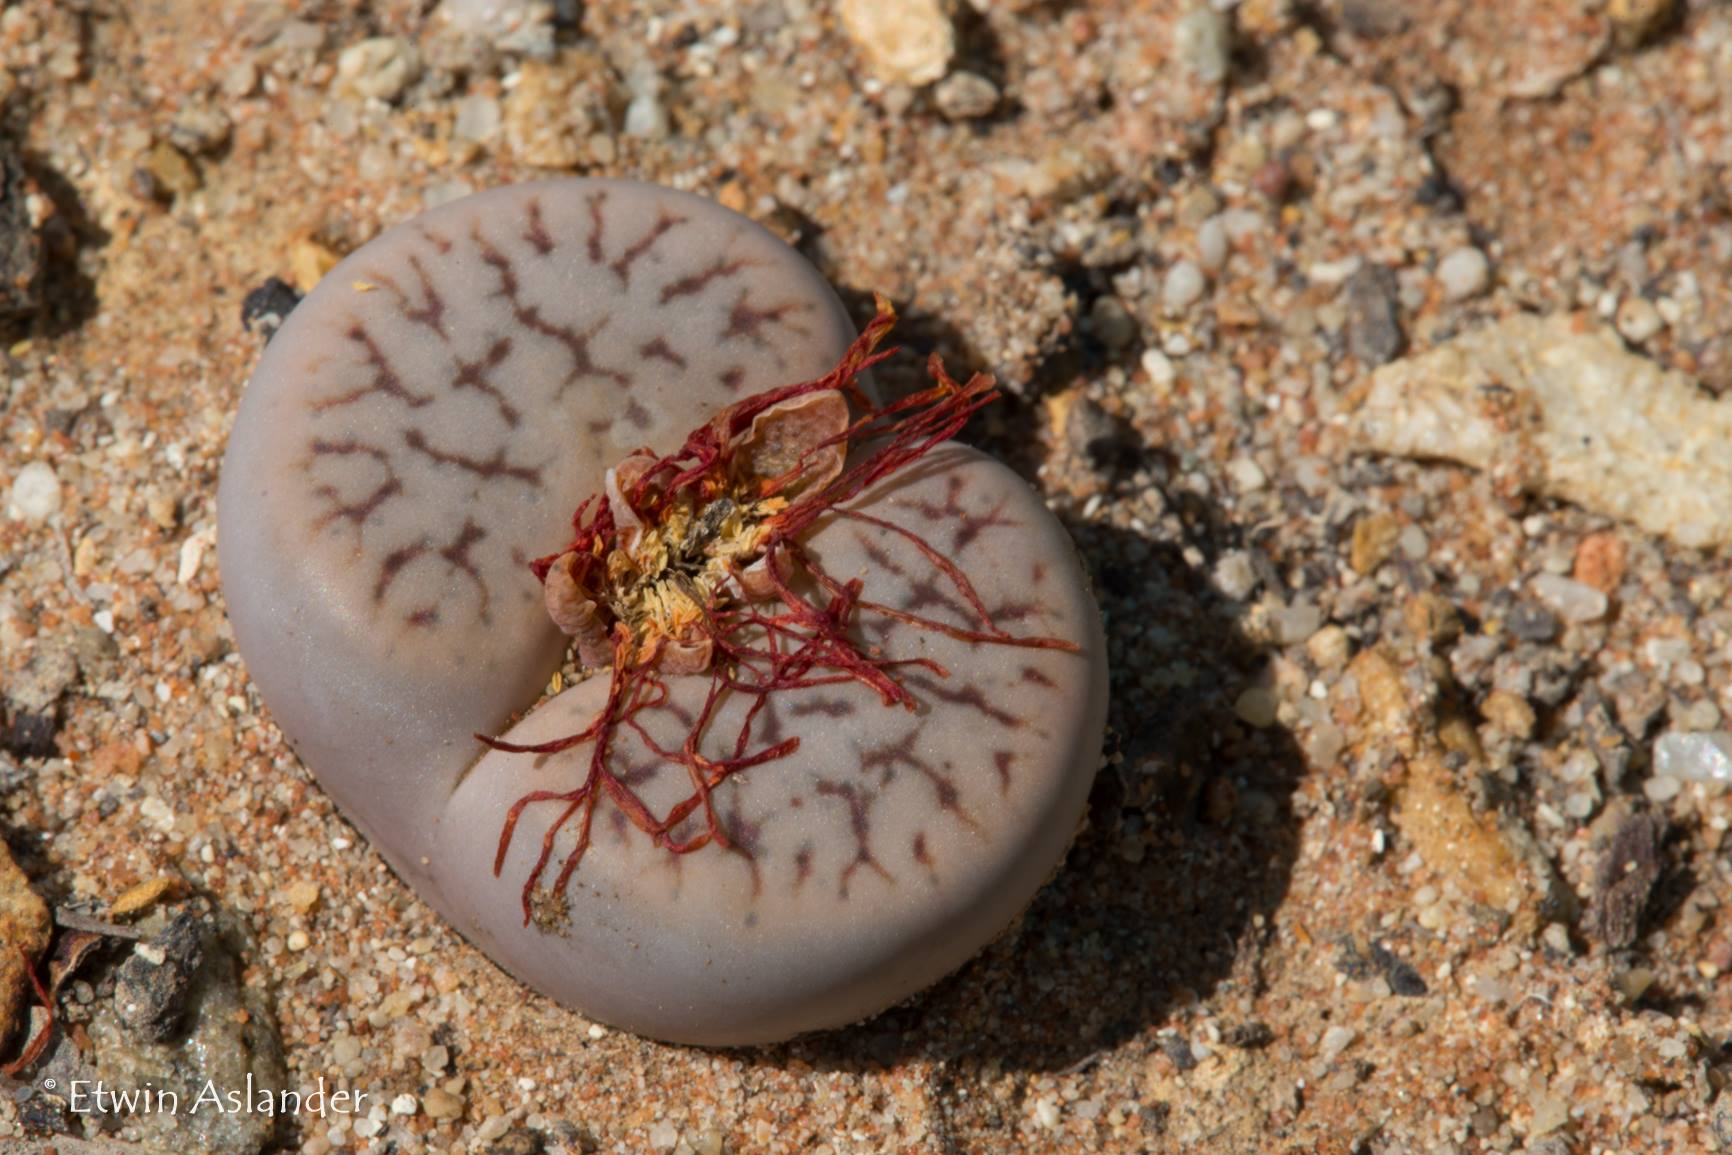 Lithops pseudotruncatella ssp. dendriitica Tok6 (Klein Aub) - Packet of 100 Seeds